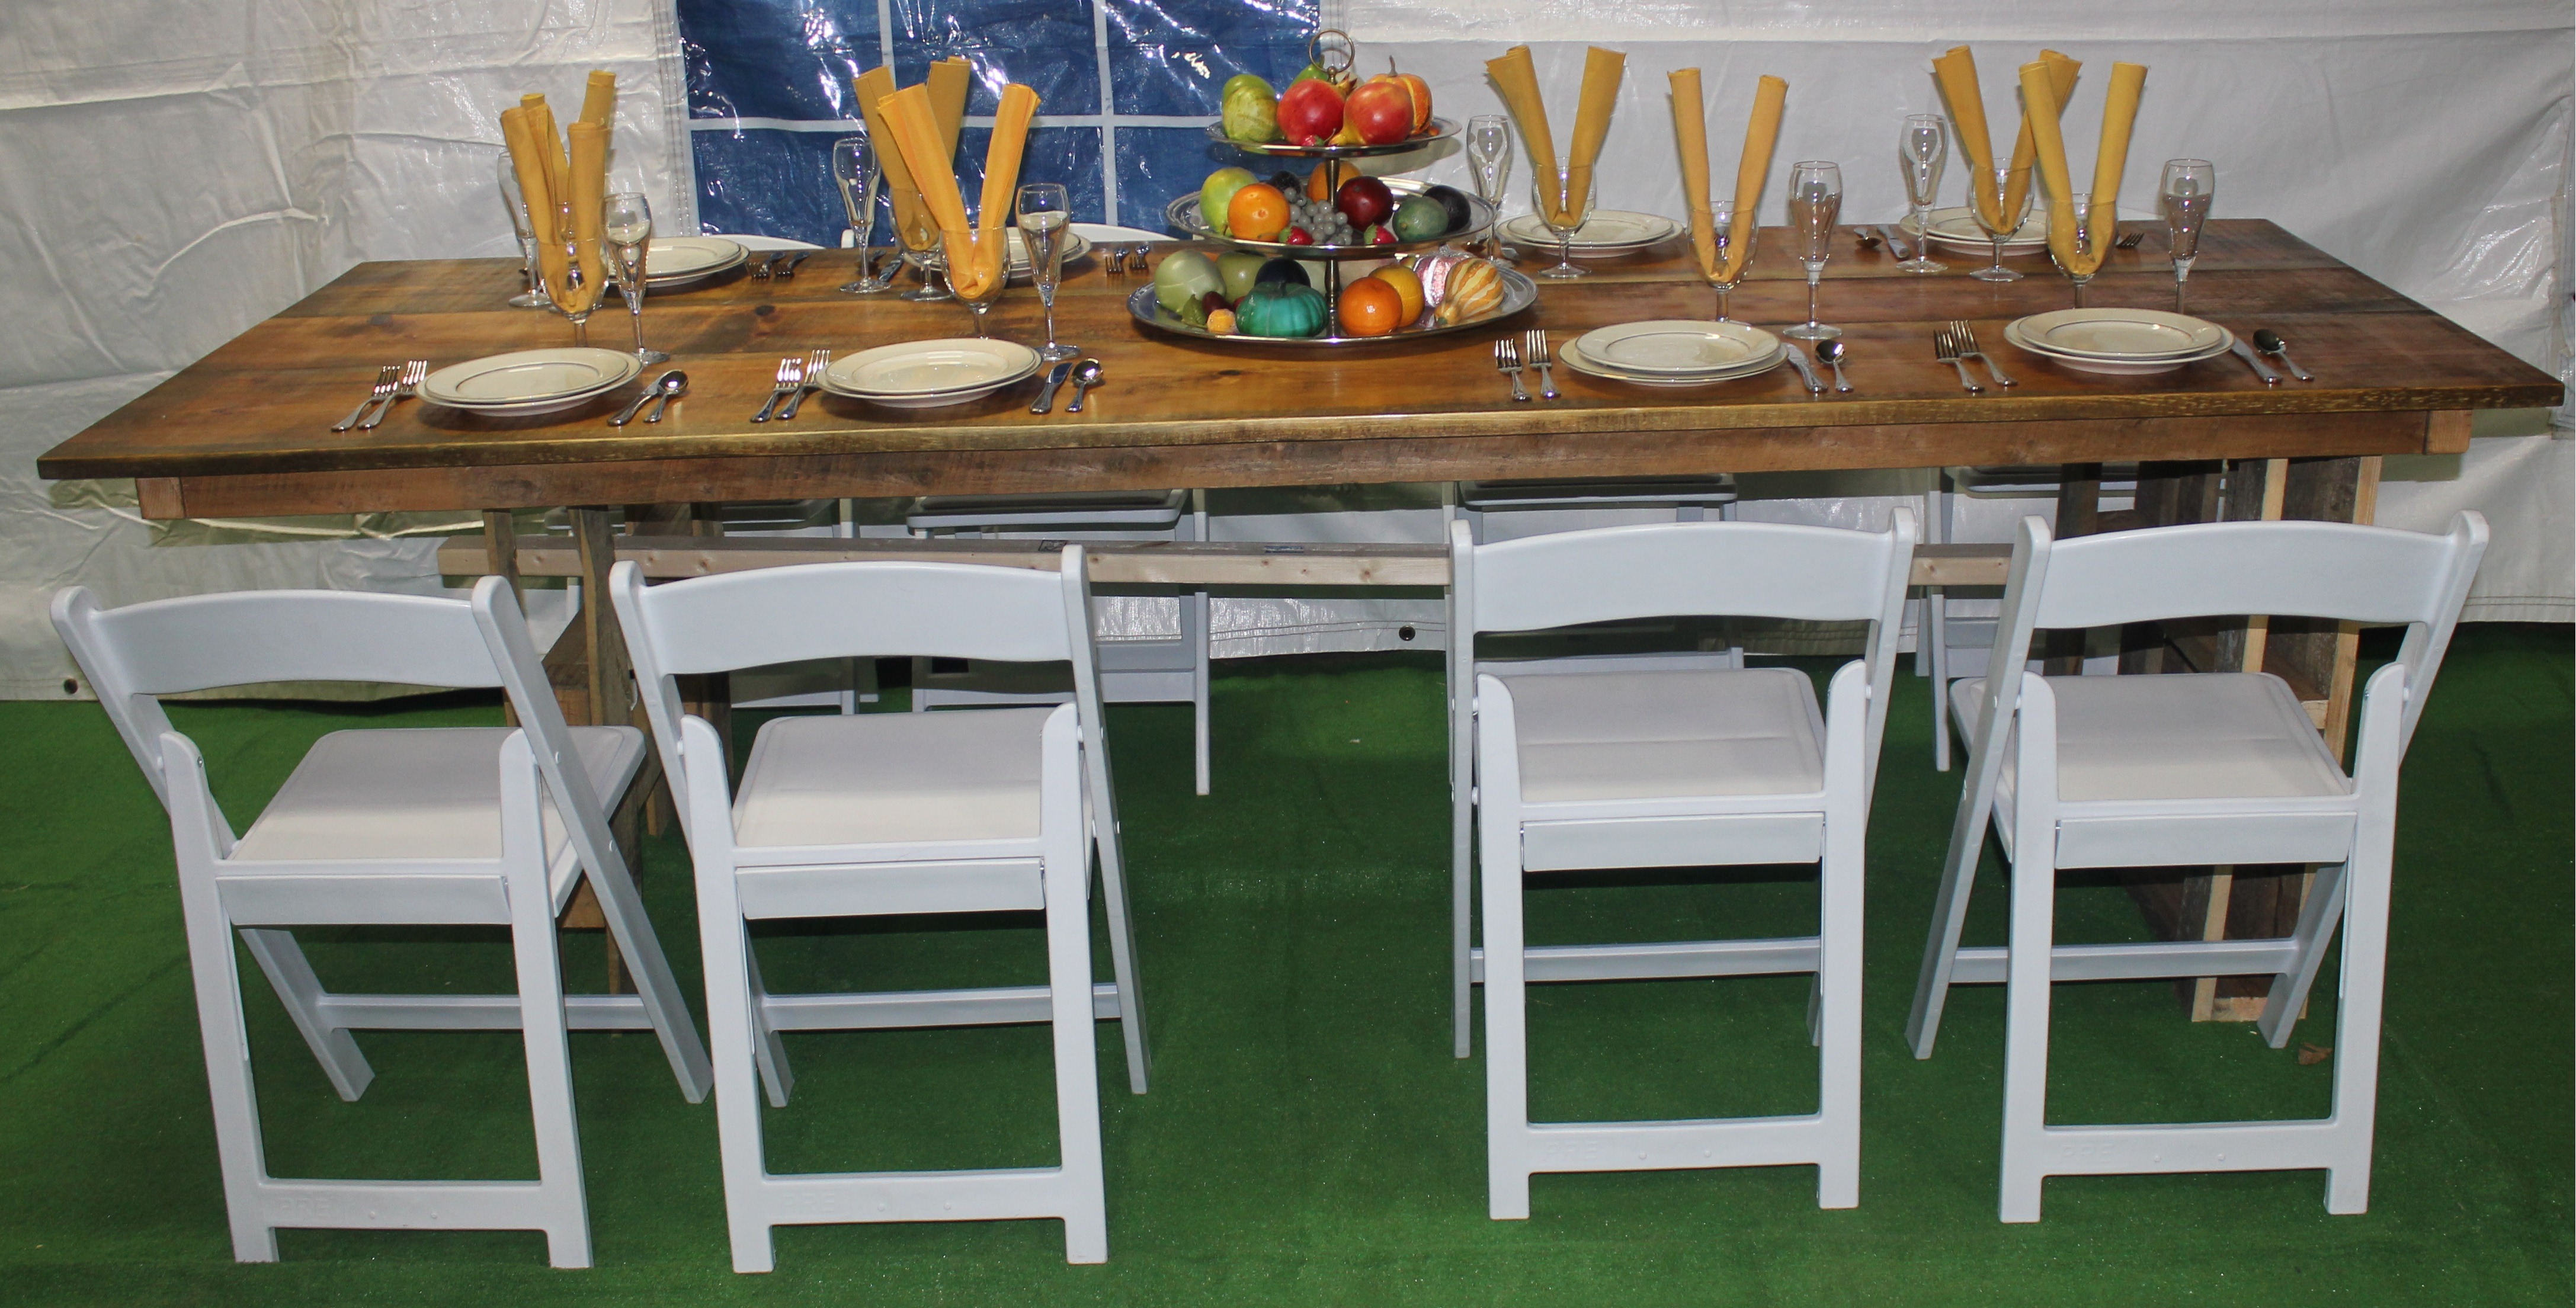 Superb img of Rustic Wooden Farm Table Taylor Rental of Torrington with #9D6F2E color and 4348x2208 pixels